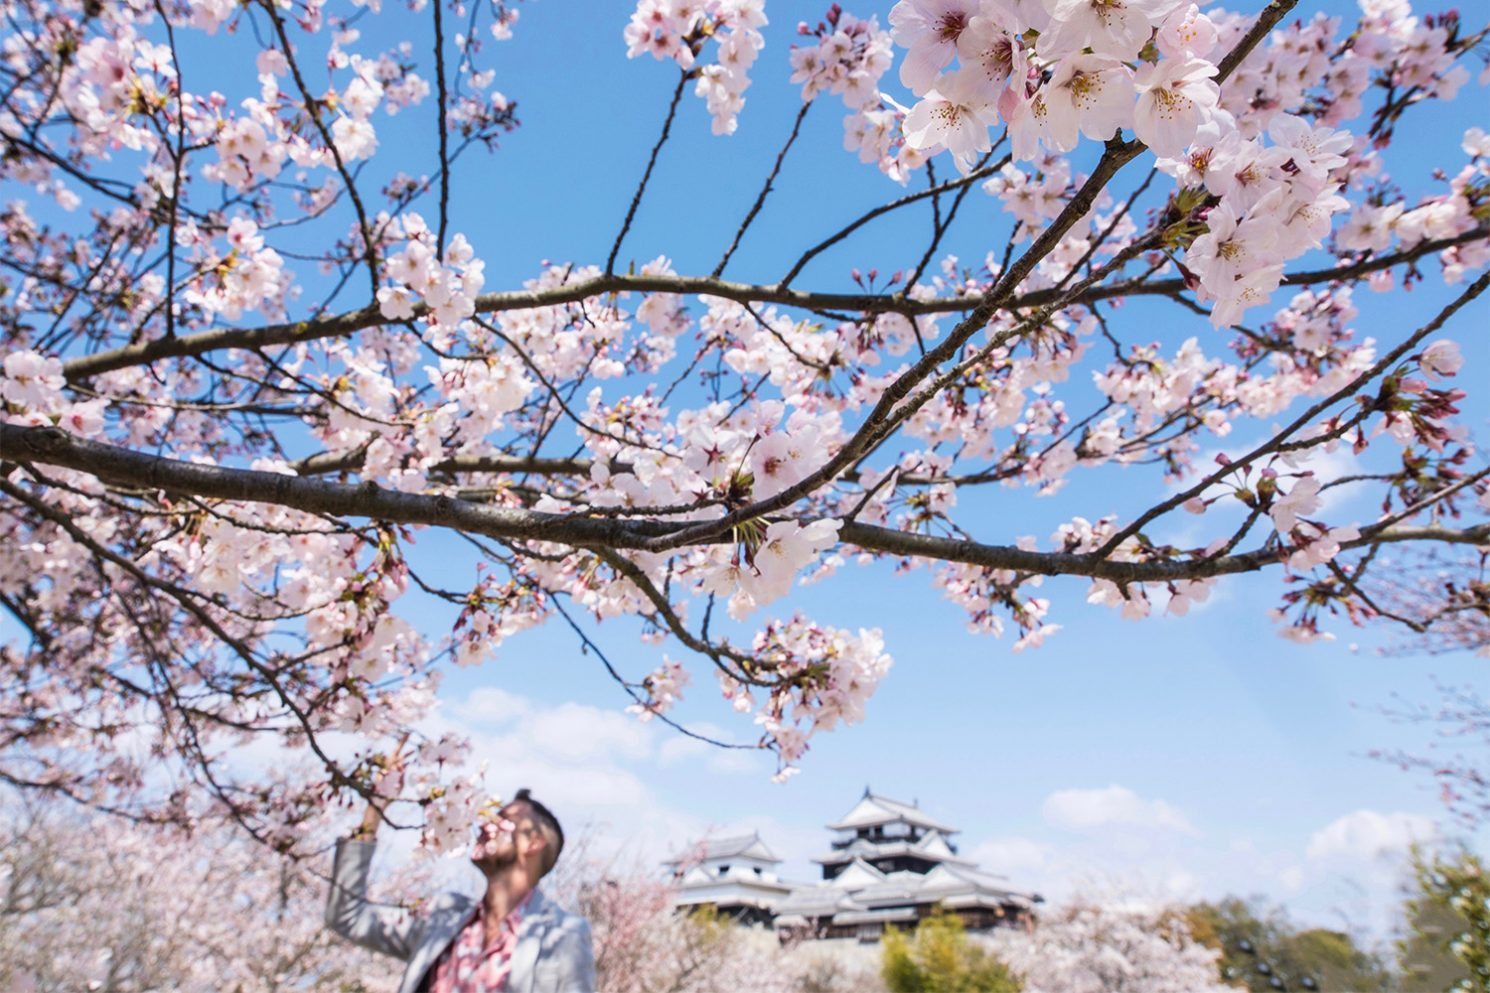 How to See Cherry Blossoms in Japan